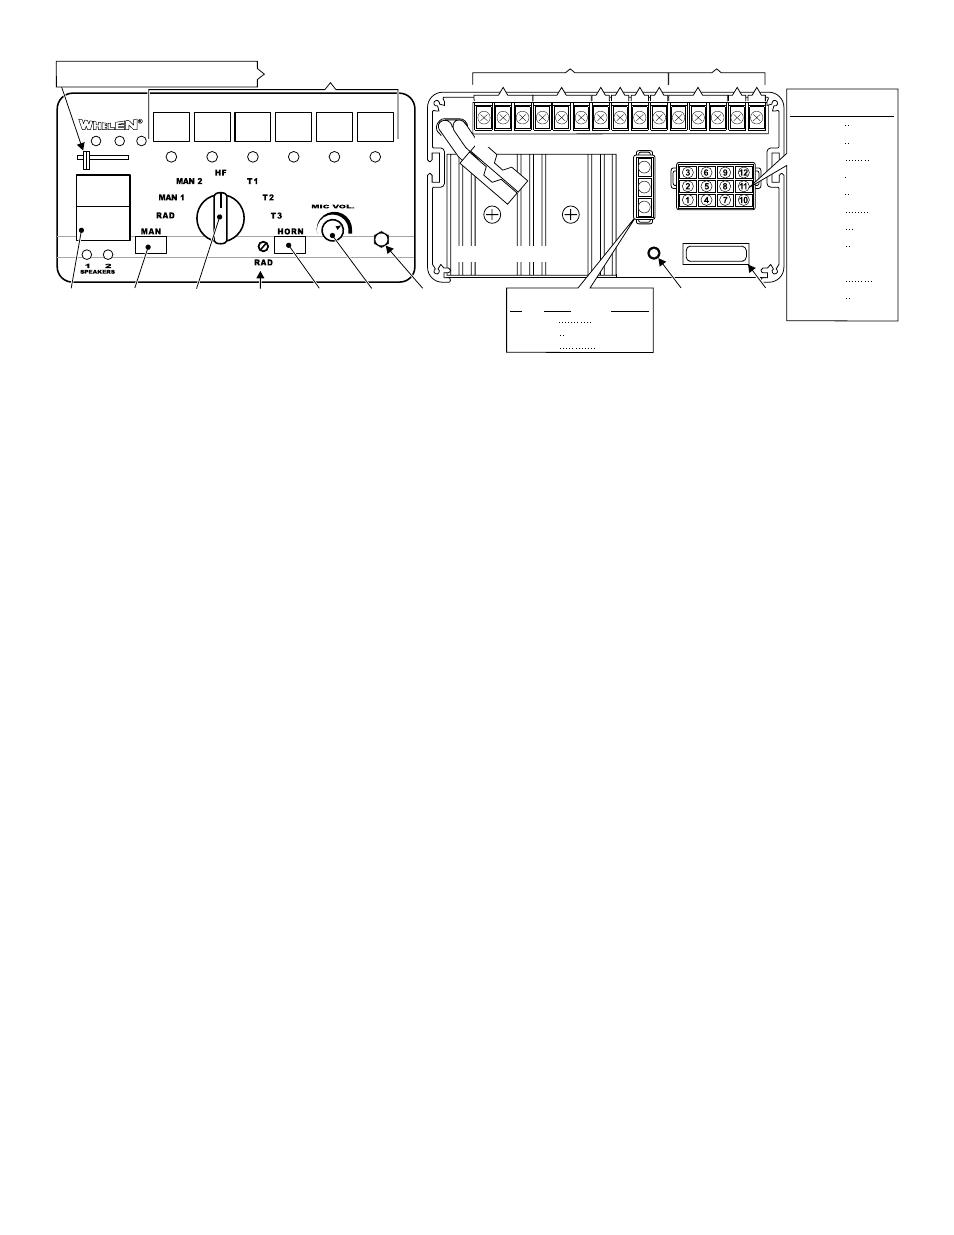 0 front panel, Fig. 3, Page 3 | Whelen 295SLSA6 User Manual | Page 3 / 6Manuals Directory